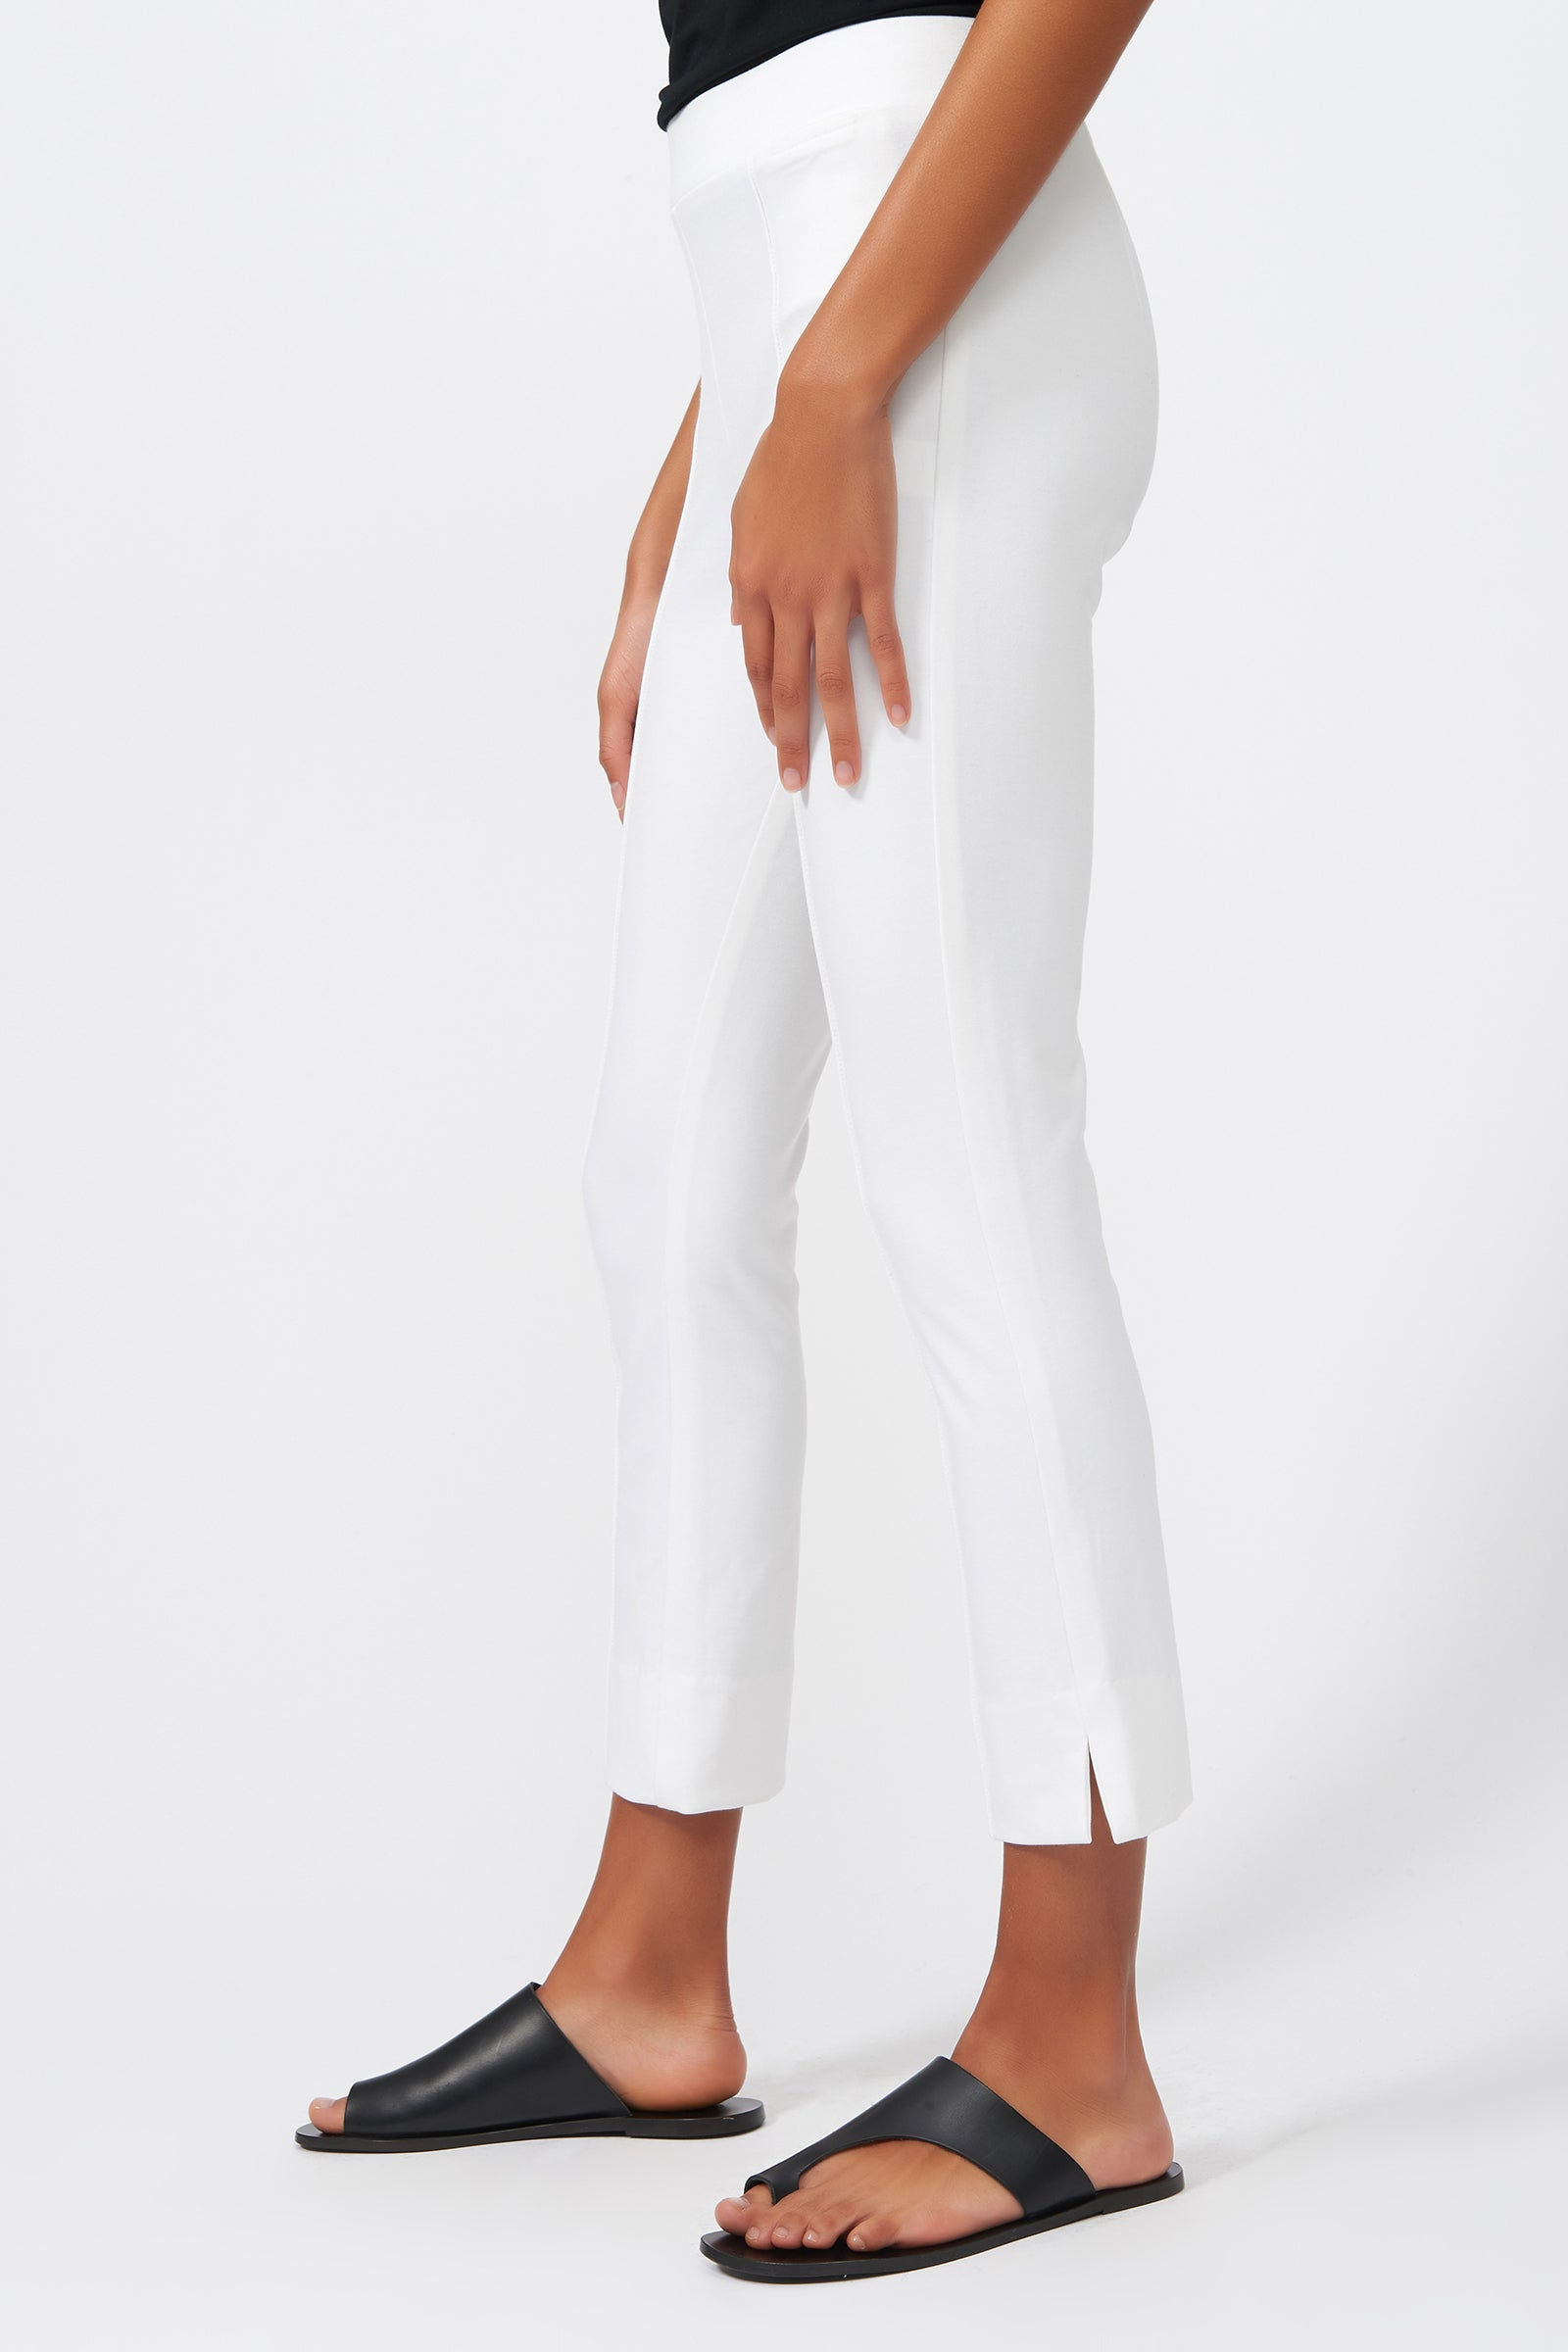 Kal Rieman Pintuck Slit Capri in White on Model Side View